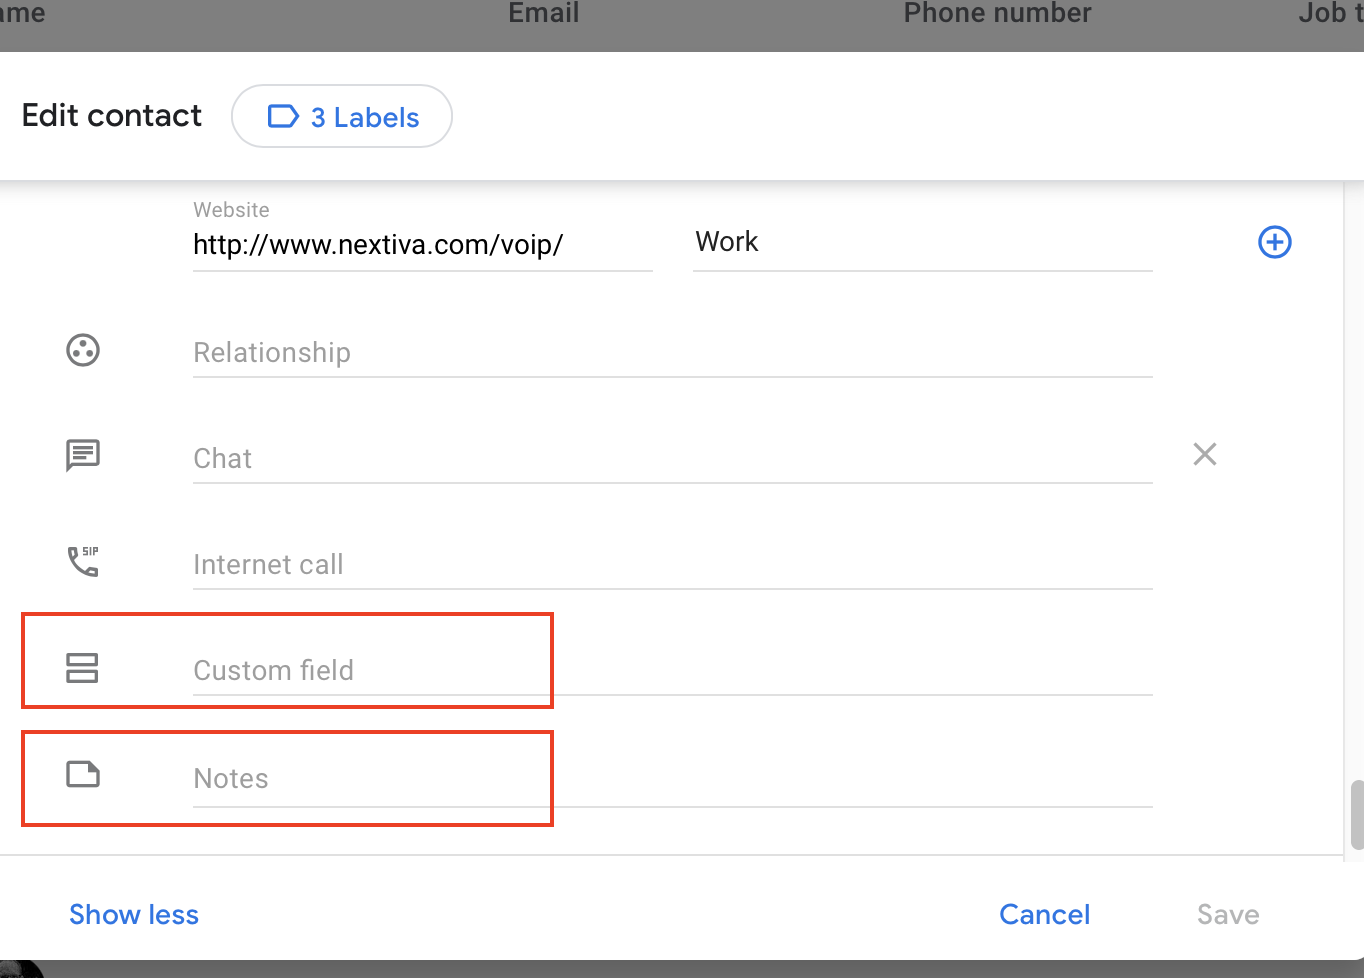 Gmail custom fields and notes help you search for contacts